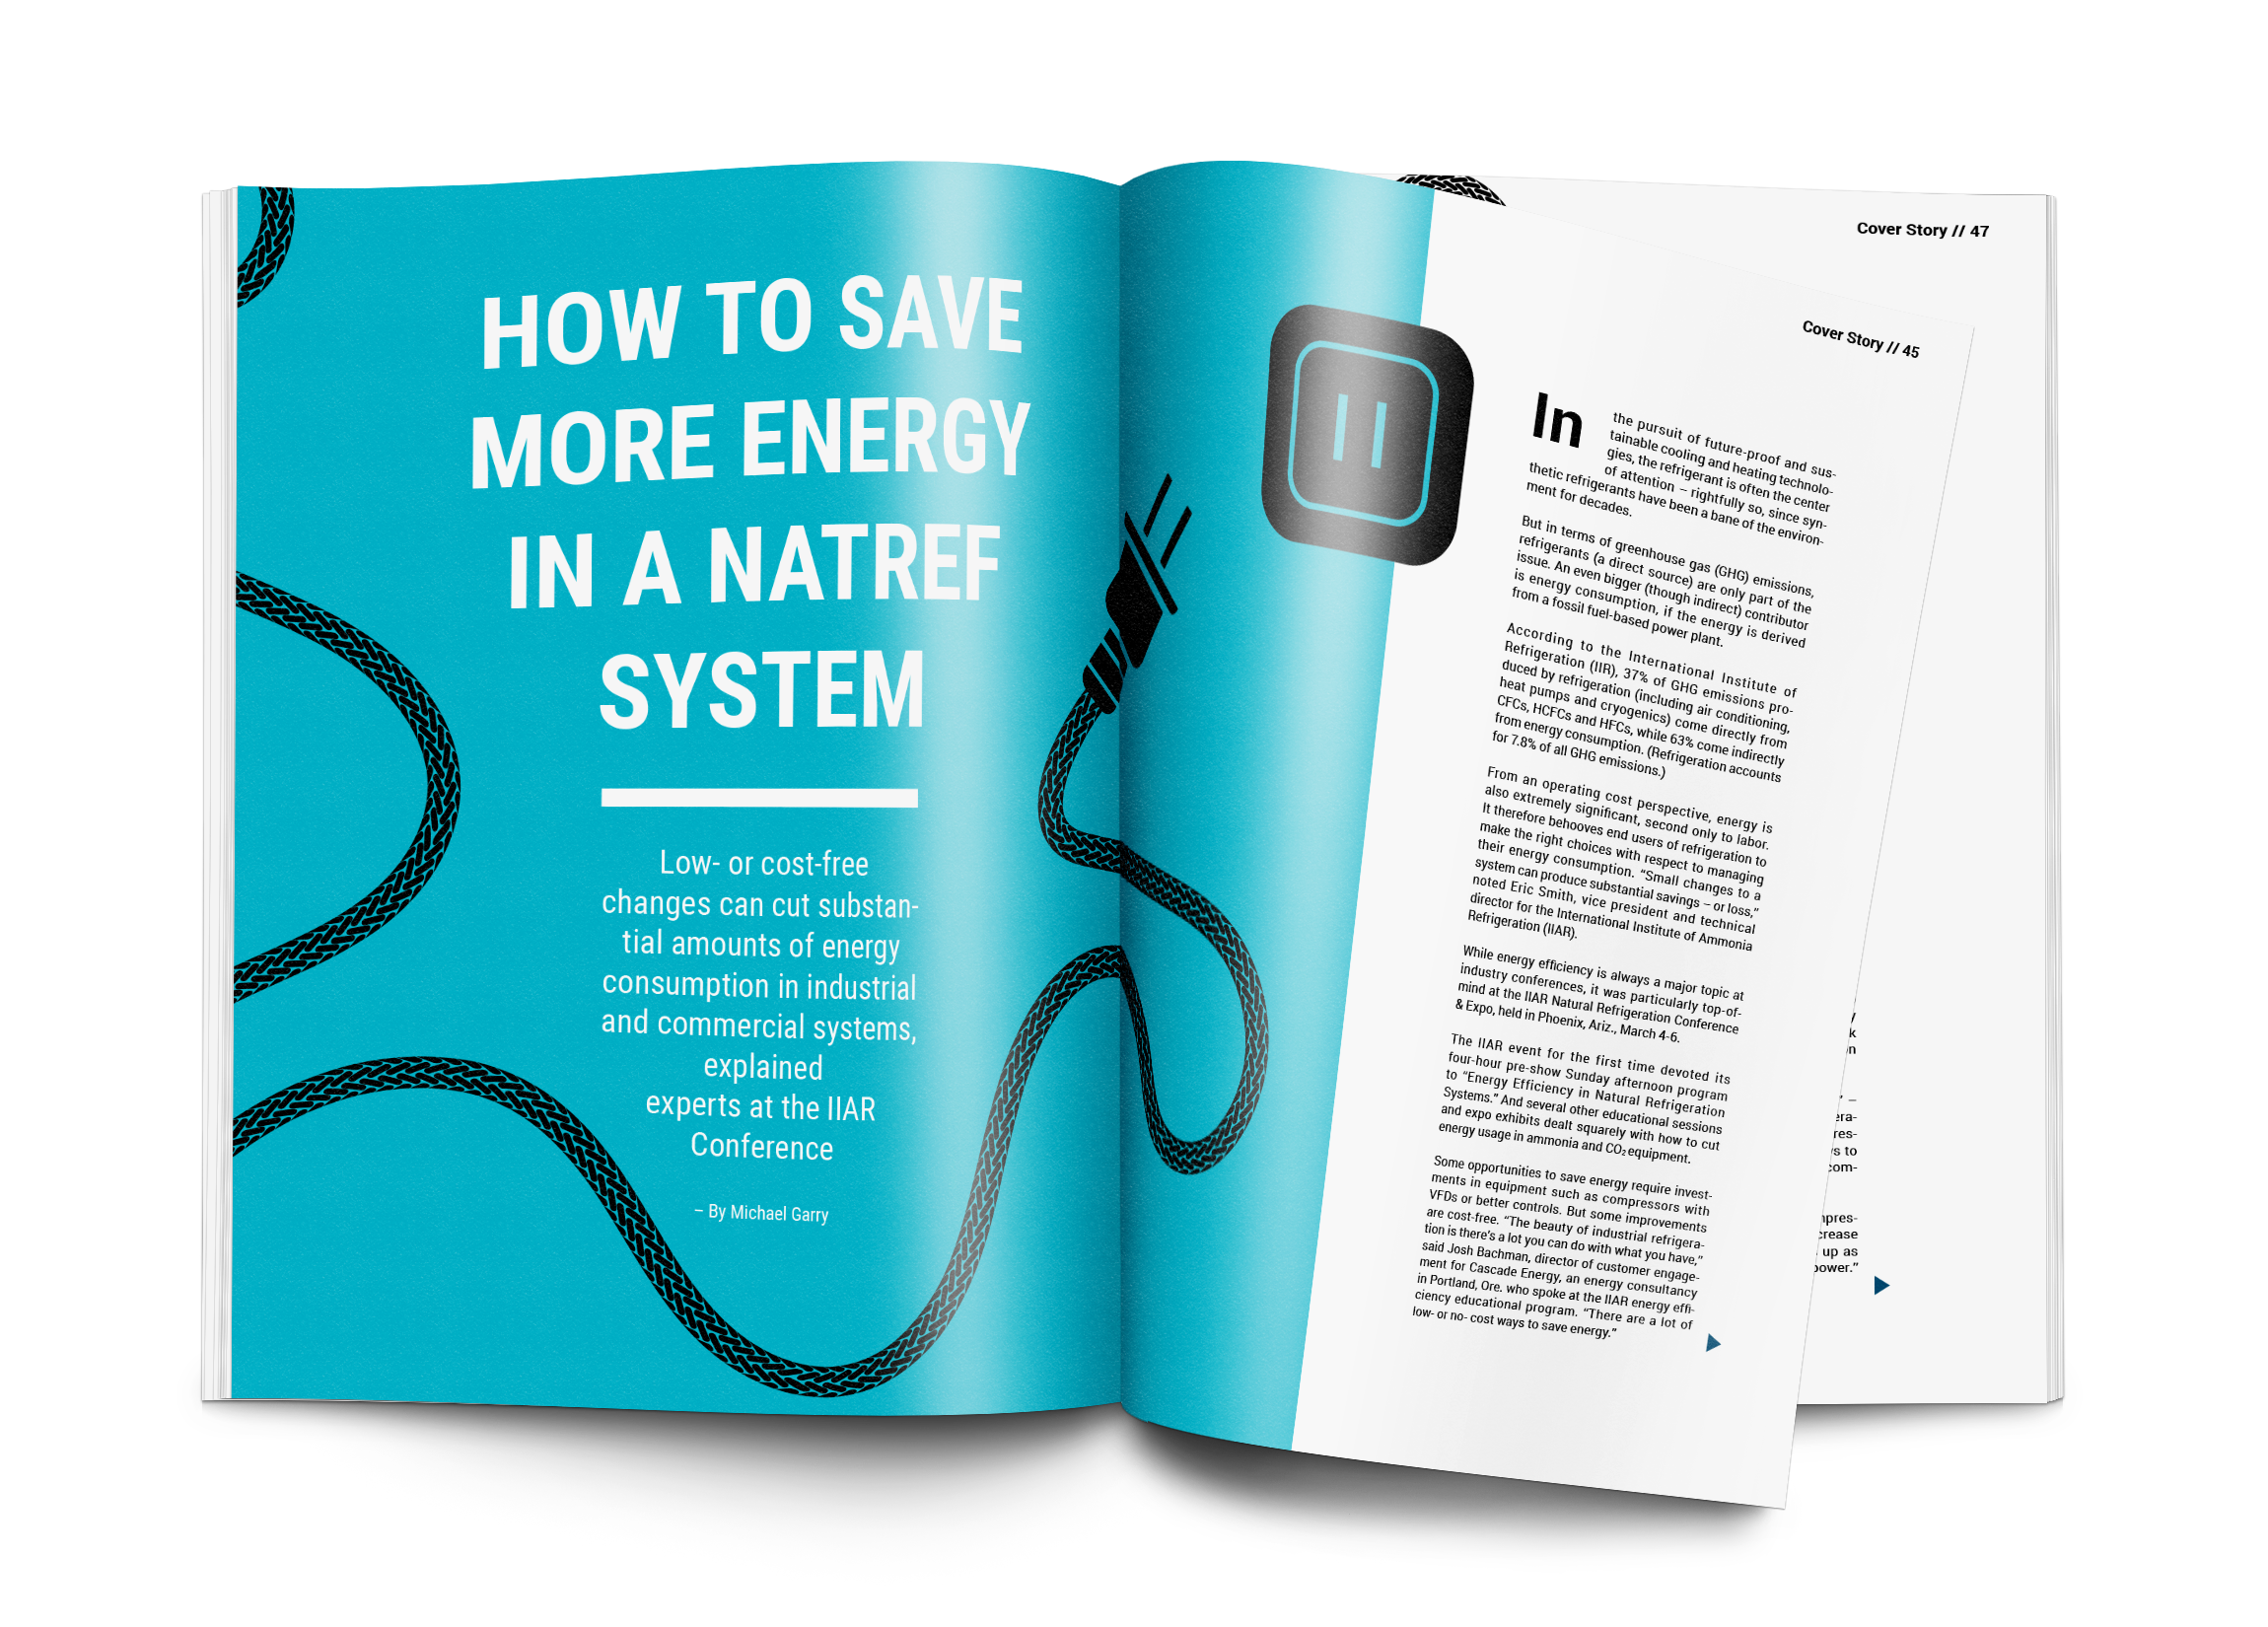 How to Save More Energy in a NatRef System